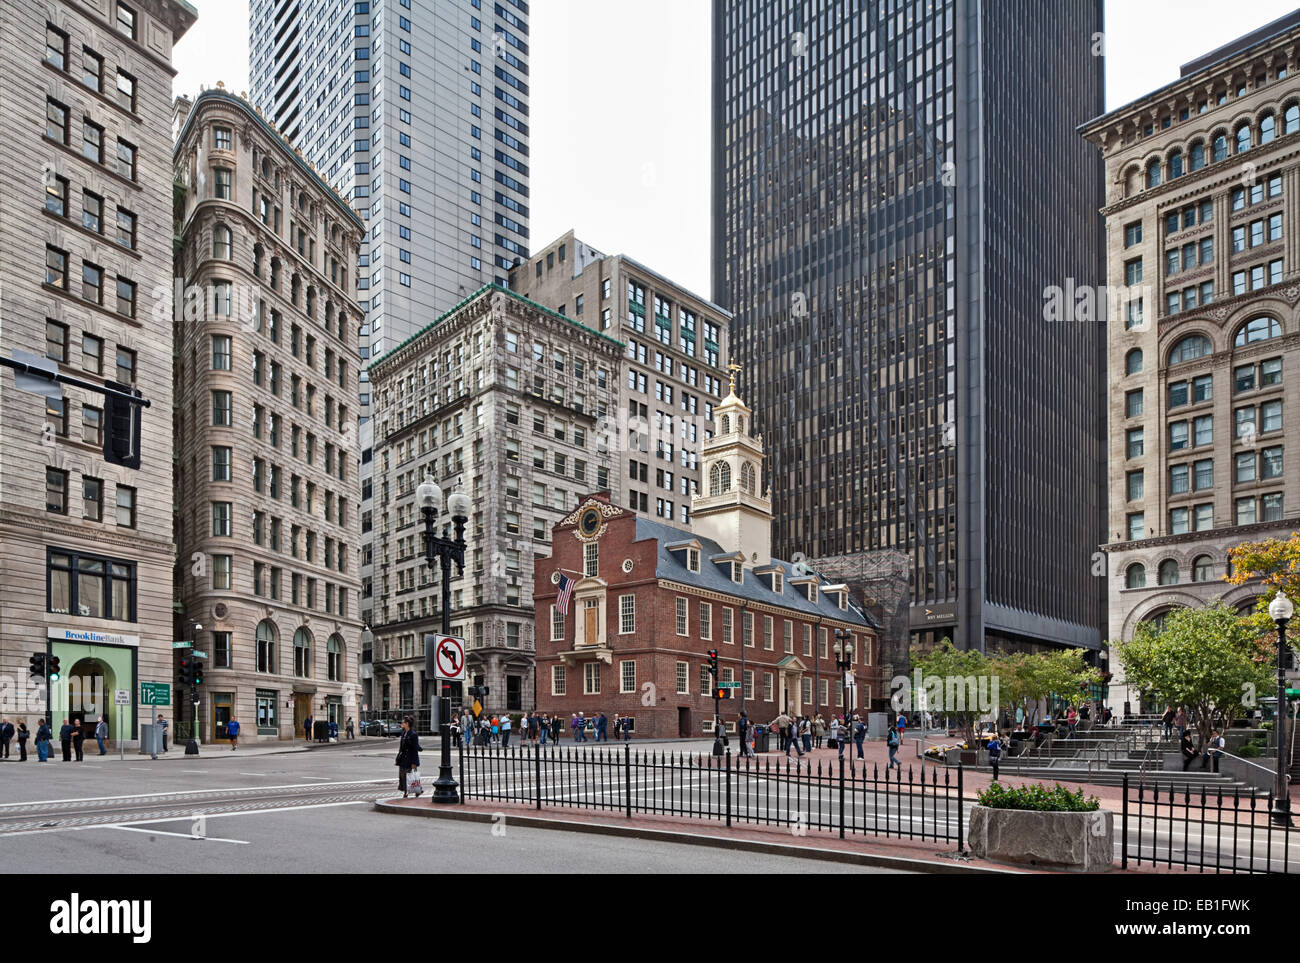 Old State House, Boston, the oldest surviving public building in Boston, Massachusetts. - Stock Image